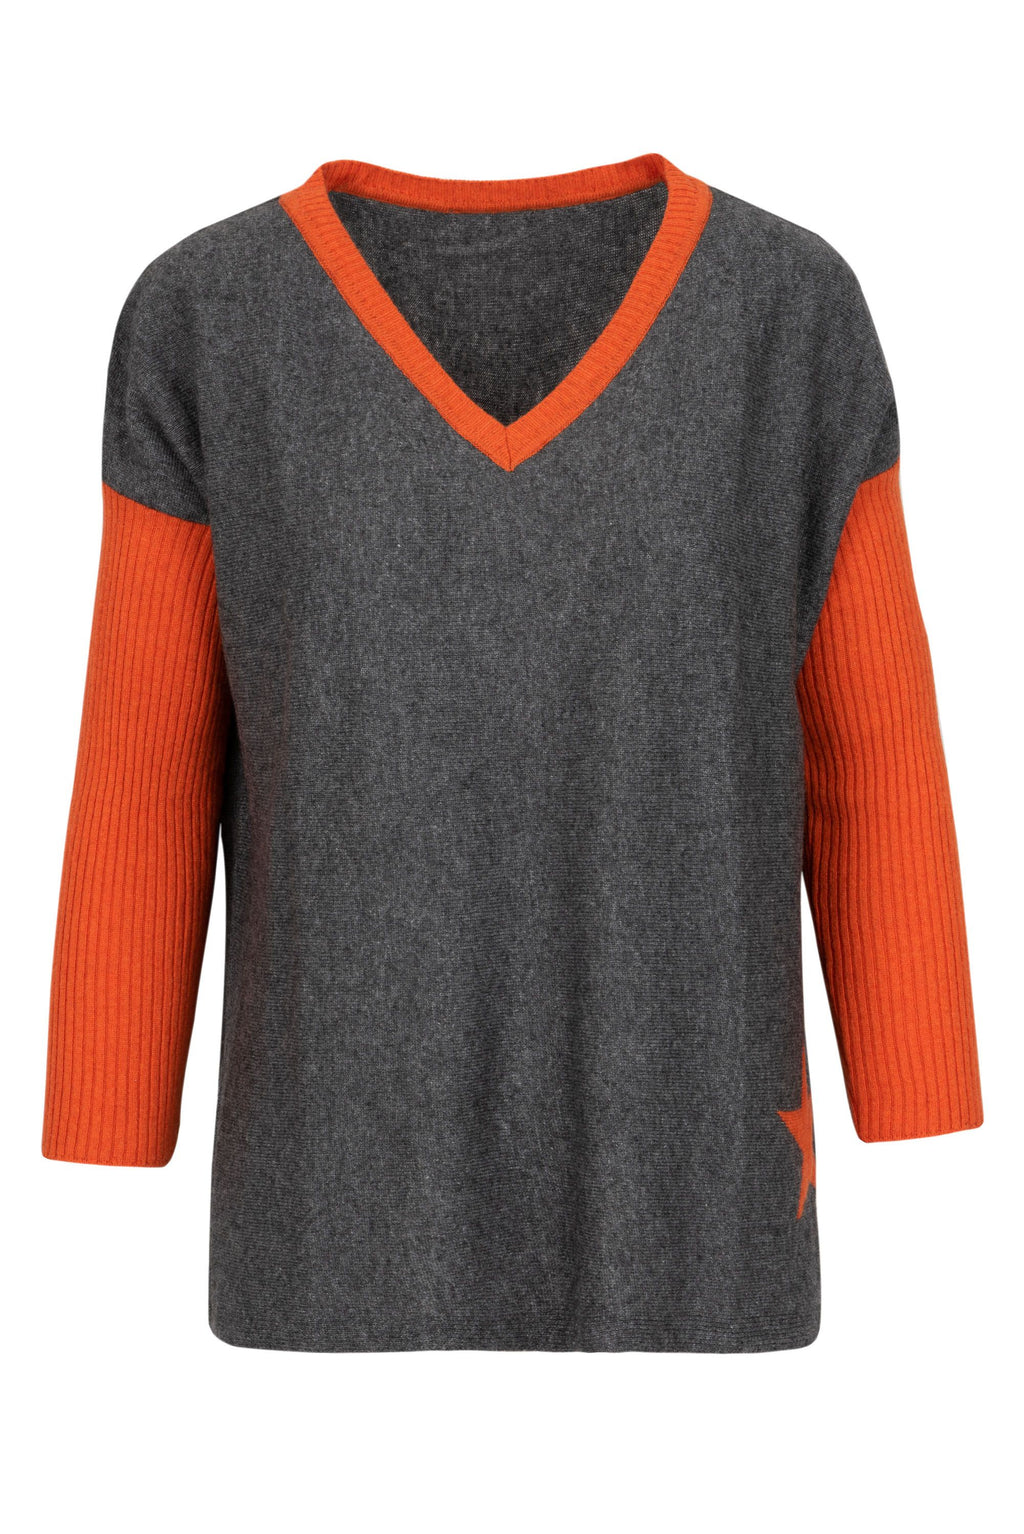 Cashmere Sweater- Orange Star